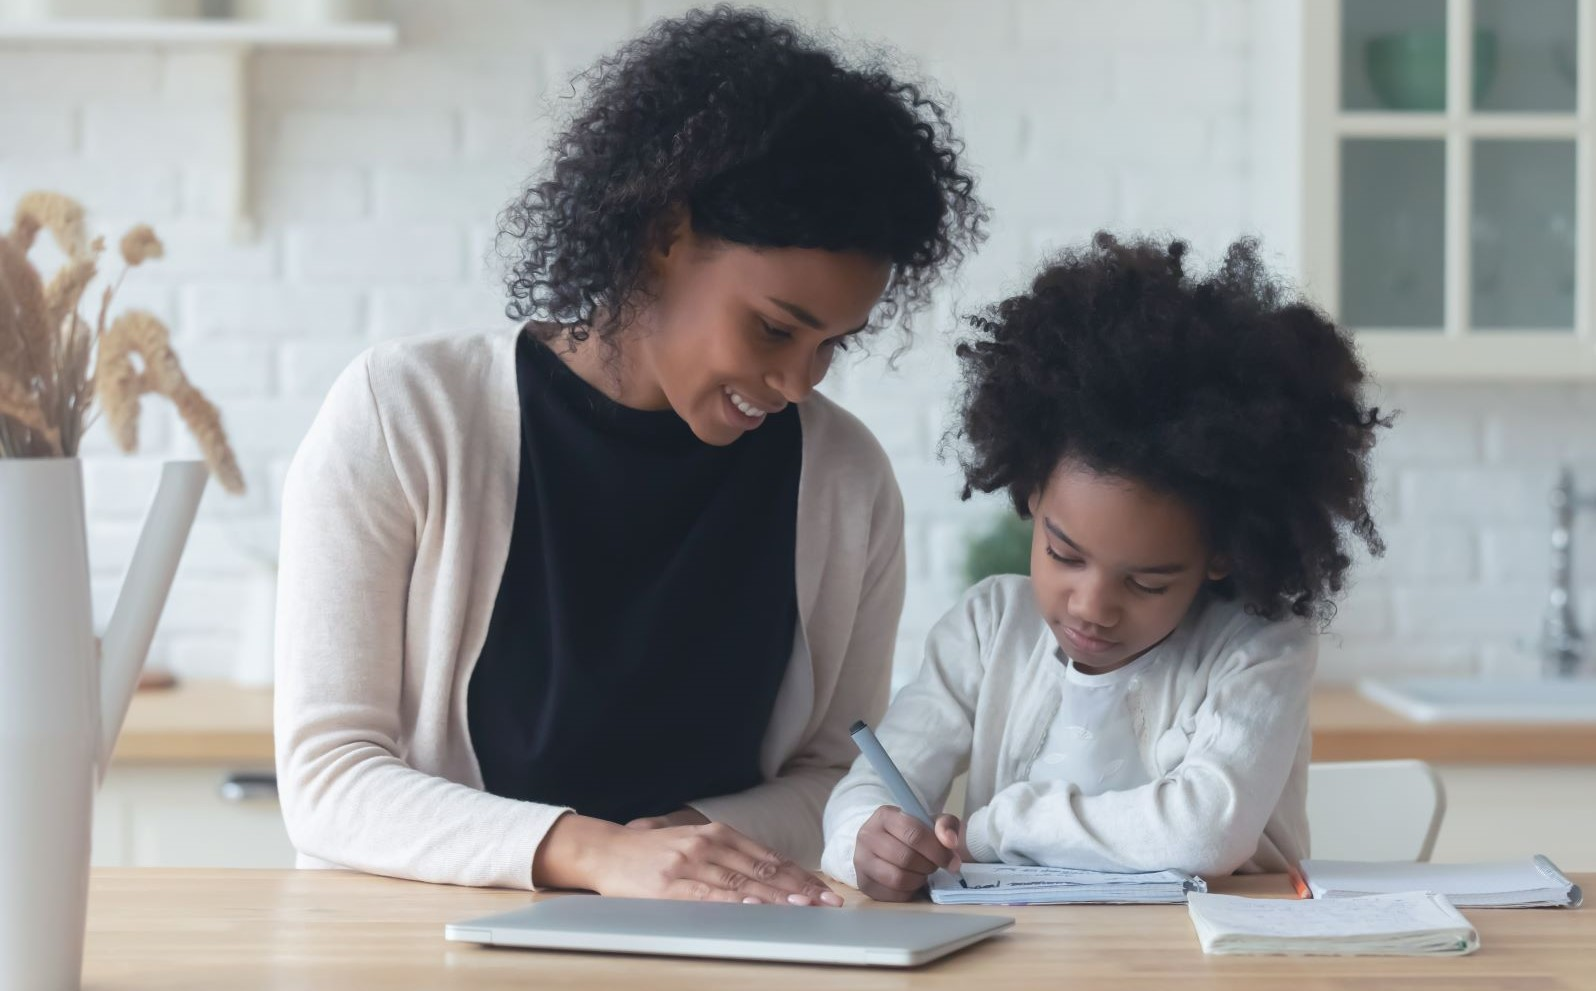 8 Tips to Help Your Child Prepare for High-Stakes Tests